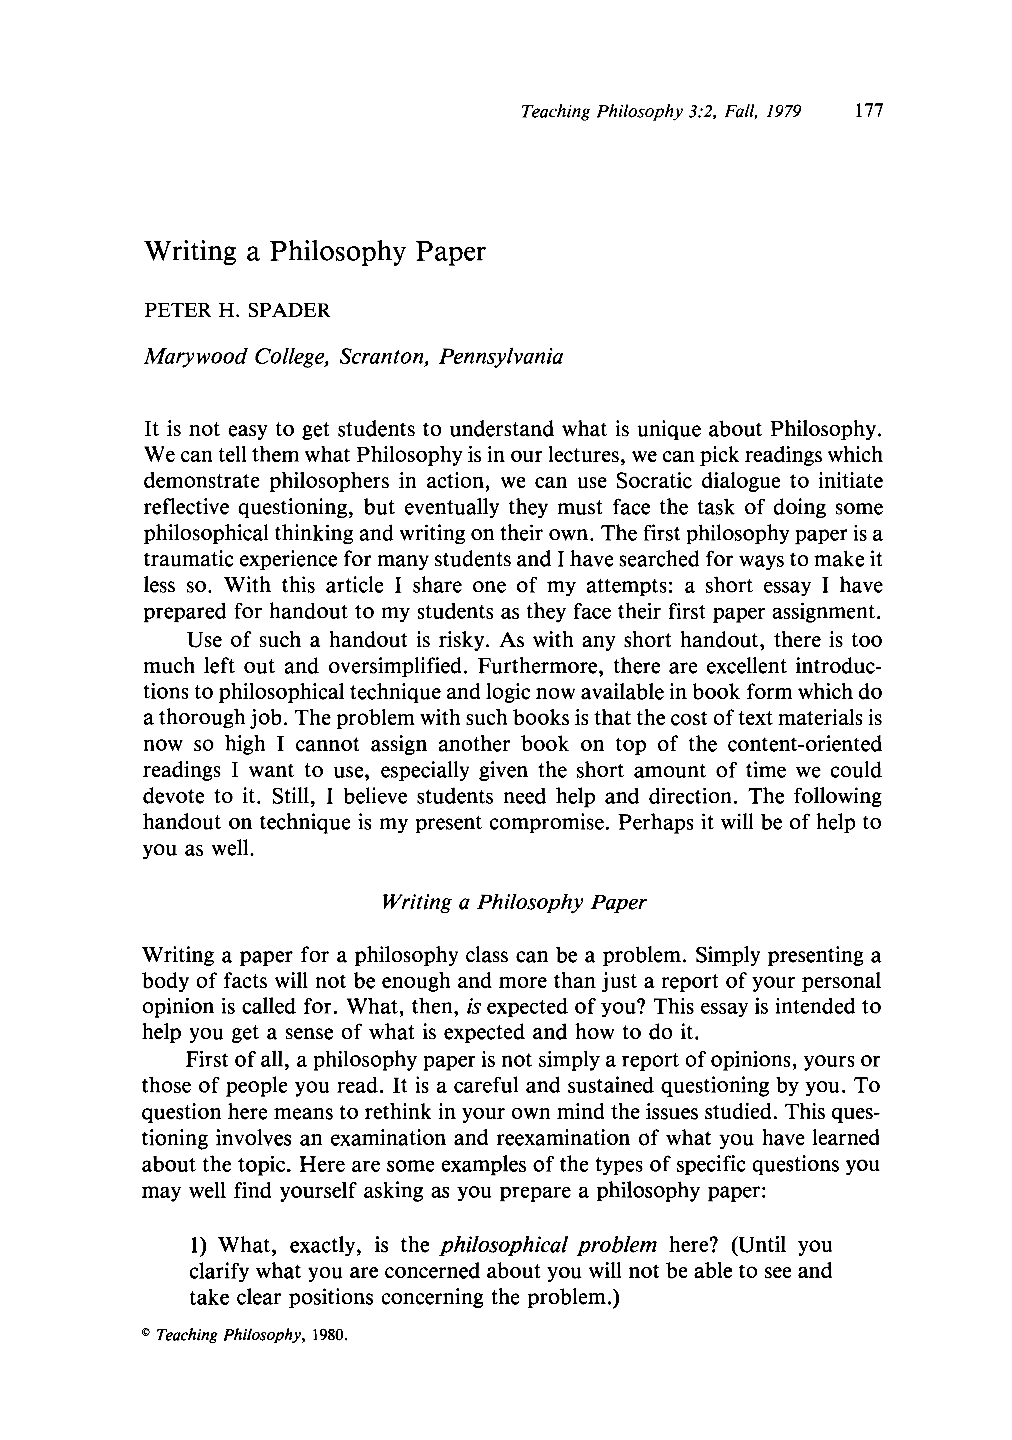 personal educational philosophy papers Why develop a personal philosophy of education a teacher's personal philosophy of education is a critical element in his or her approach to guiding children along.